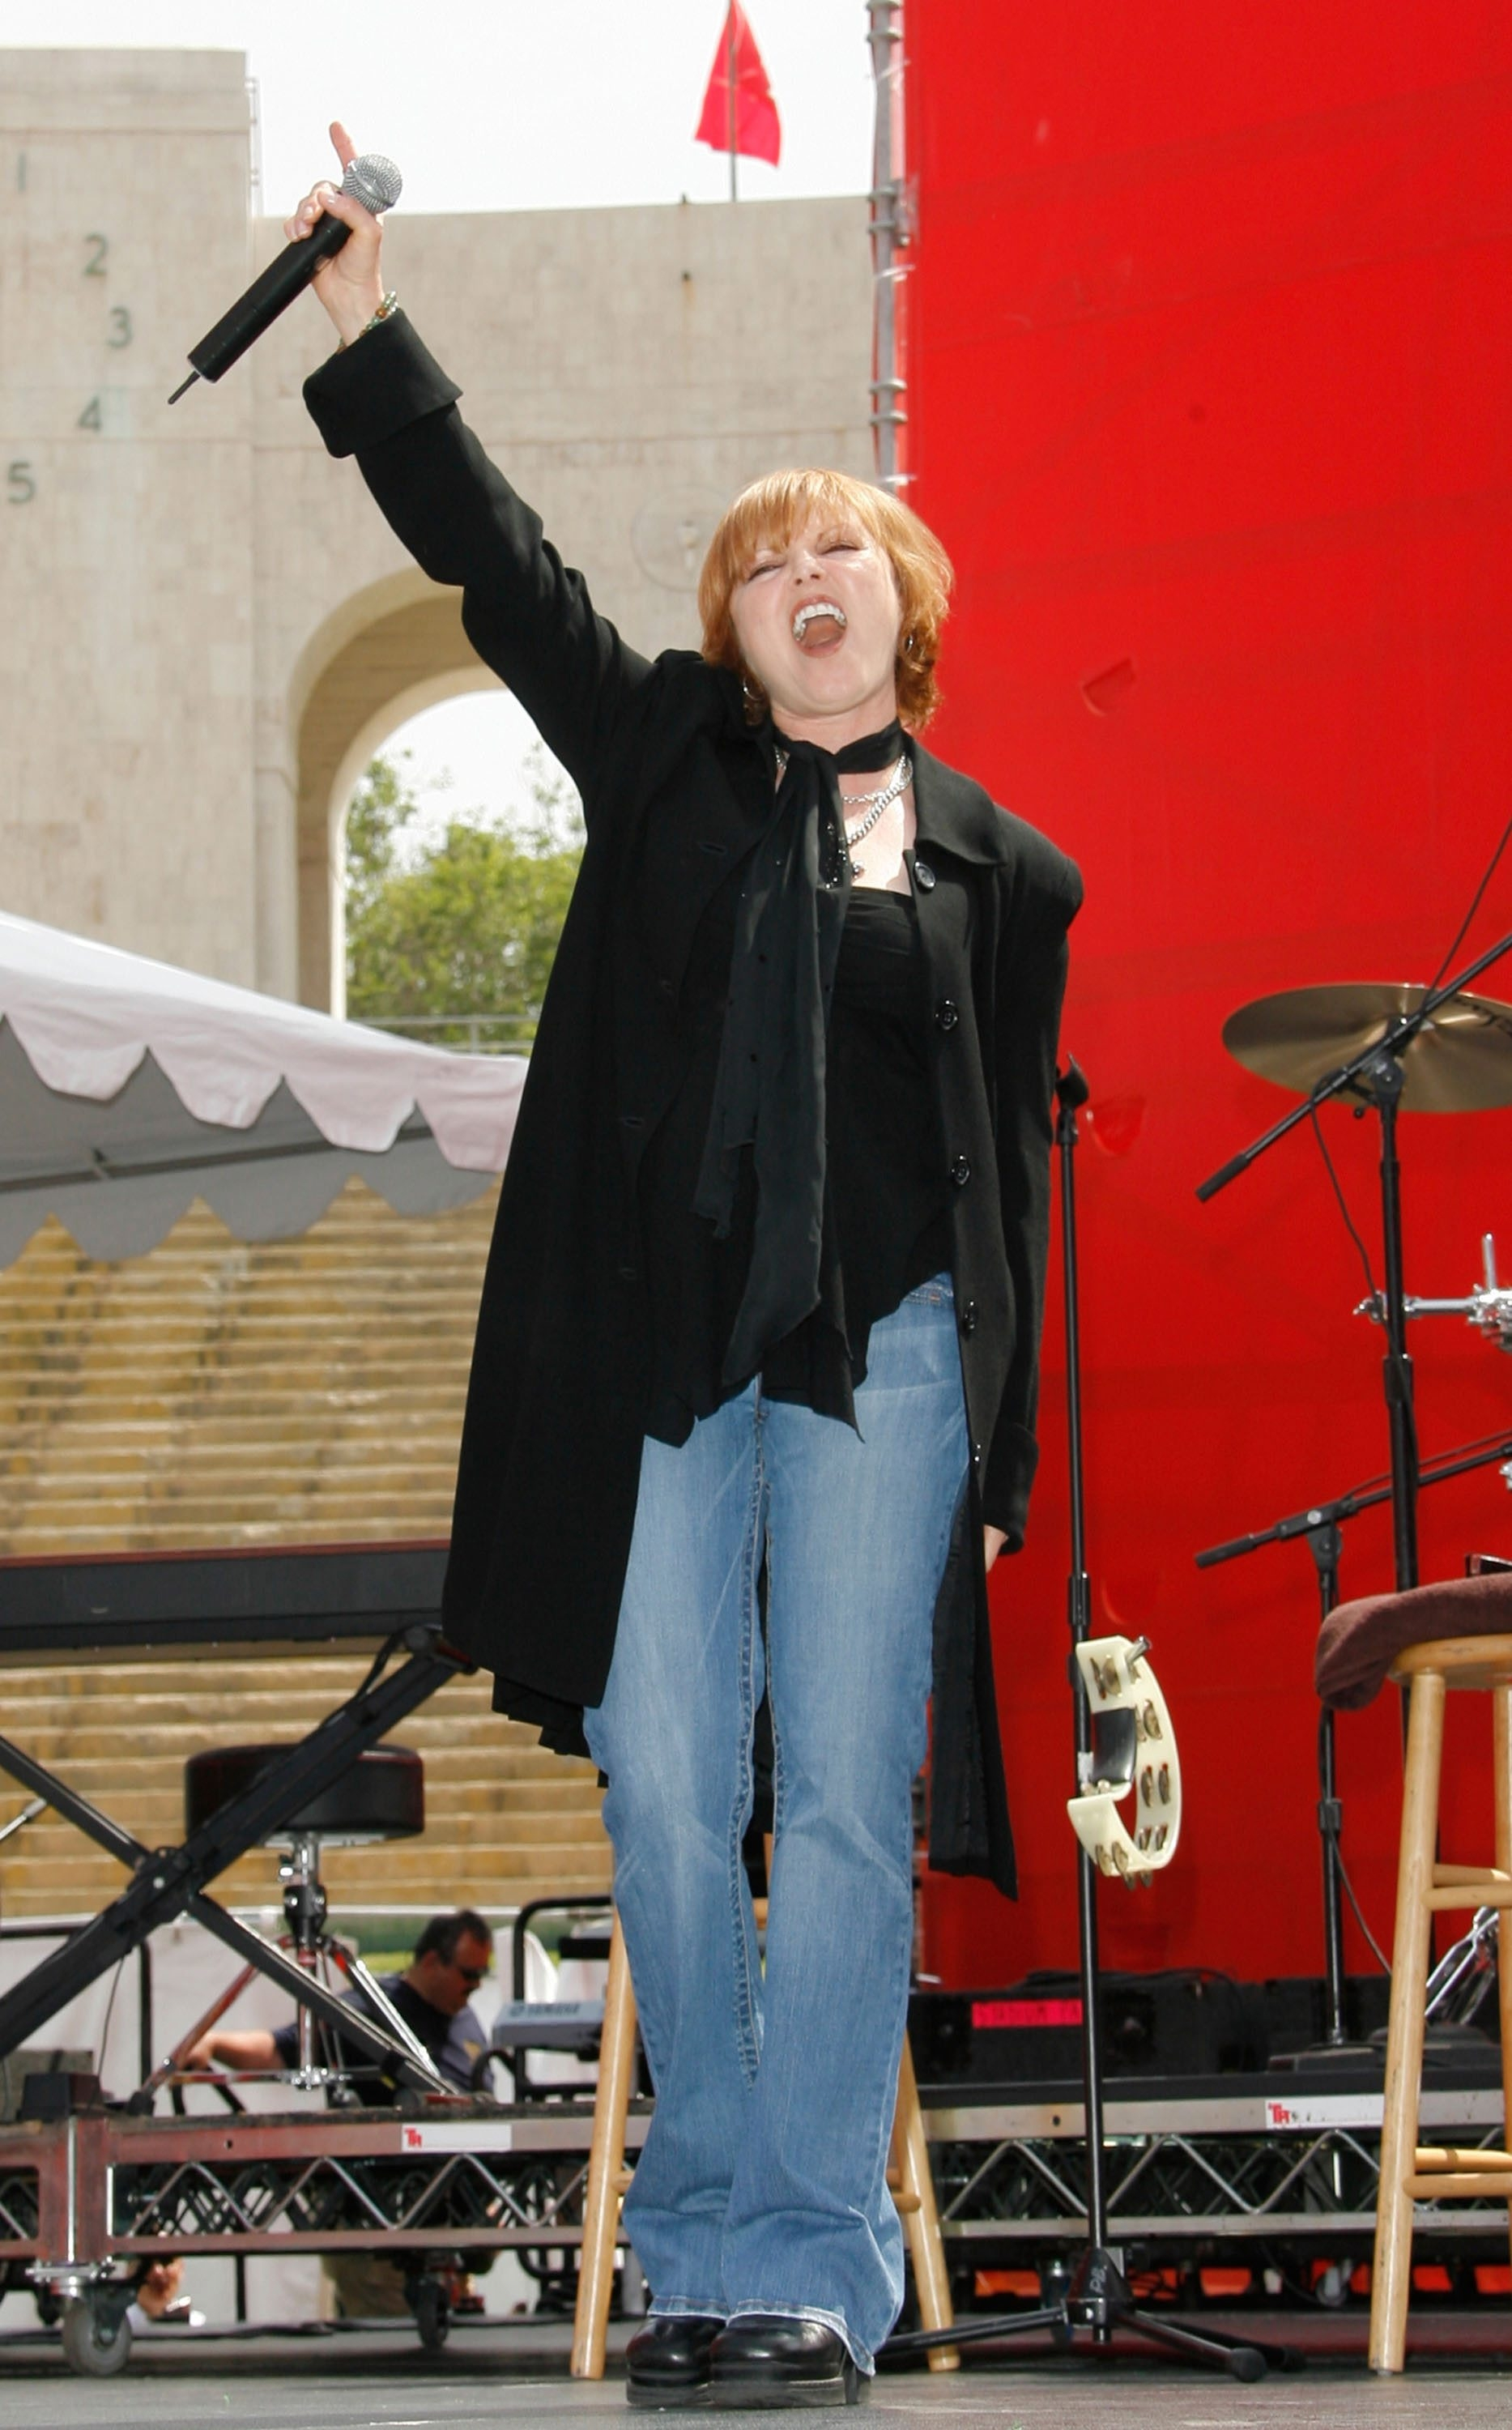 LOS ANGELES, CA – MAY 12:  Singer and songwriter Pat Benatar performs at the Revlon Run/Walk for women held at Los Angeles Memorial Coliseum on May 12, 2007 in Los Angeles California.  (Photo by Mark Davis/Getty Images) *** Local Caption *** Pat Benatar *** Local Caption *** Pat Benatar